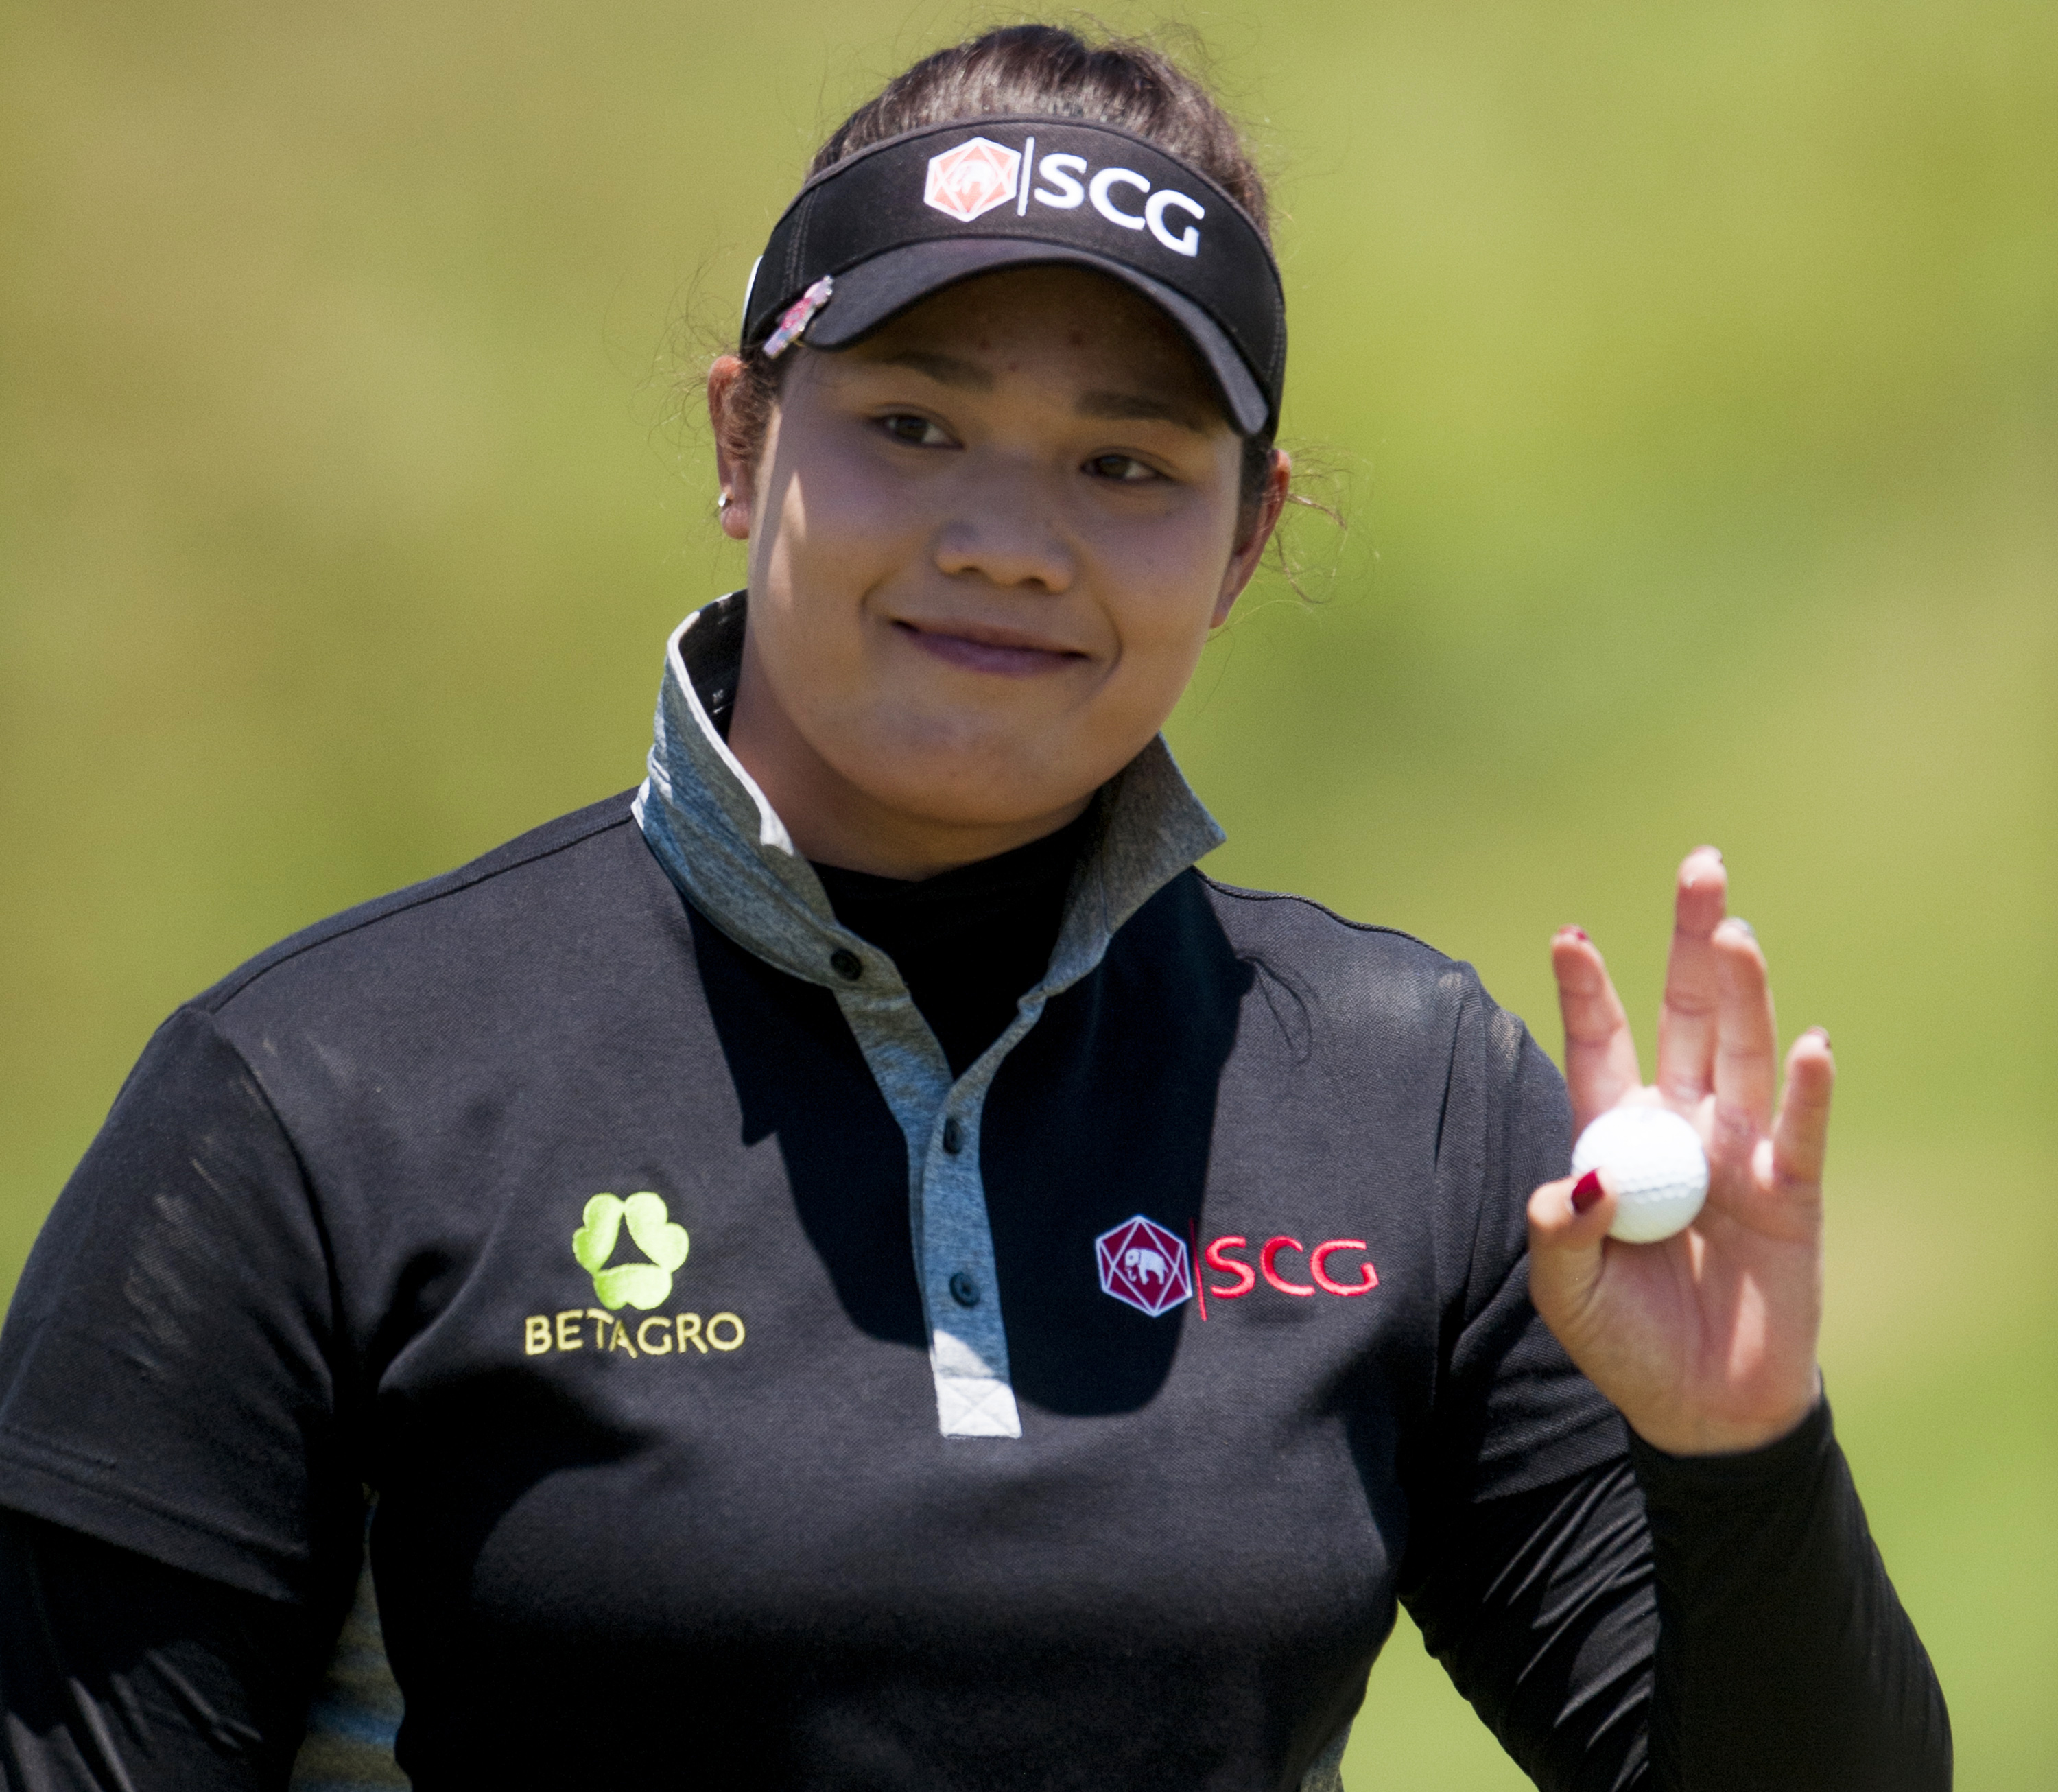 Ariya Jutanugarn waves to spectators after making a birdie on hole four during round four of the Yokohama Tire LPGA Classic golf tournament in Prattville, Ala., Sunday, May 8, 2016. (Mickey Welsh/The Montgomery Advertiser via AP)  NO SALES; MANDATORY CRED